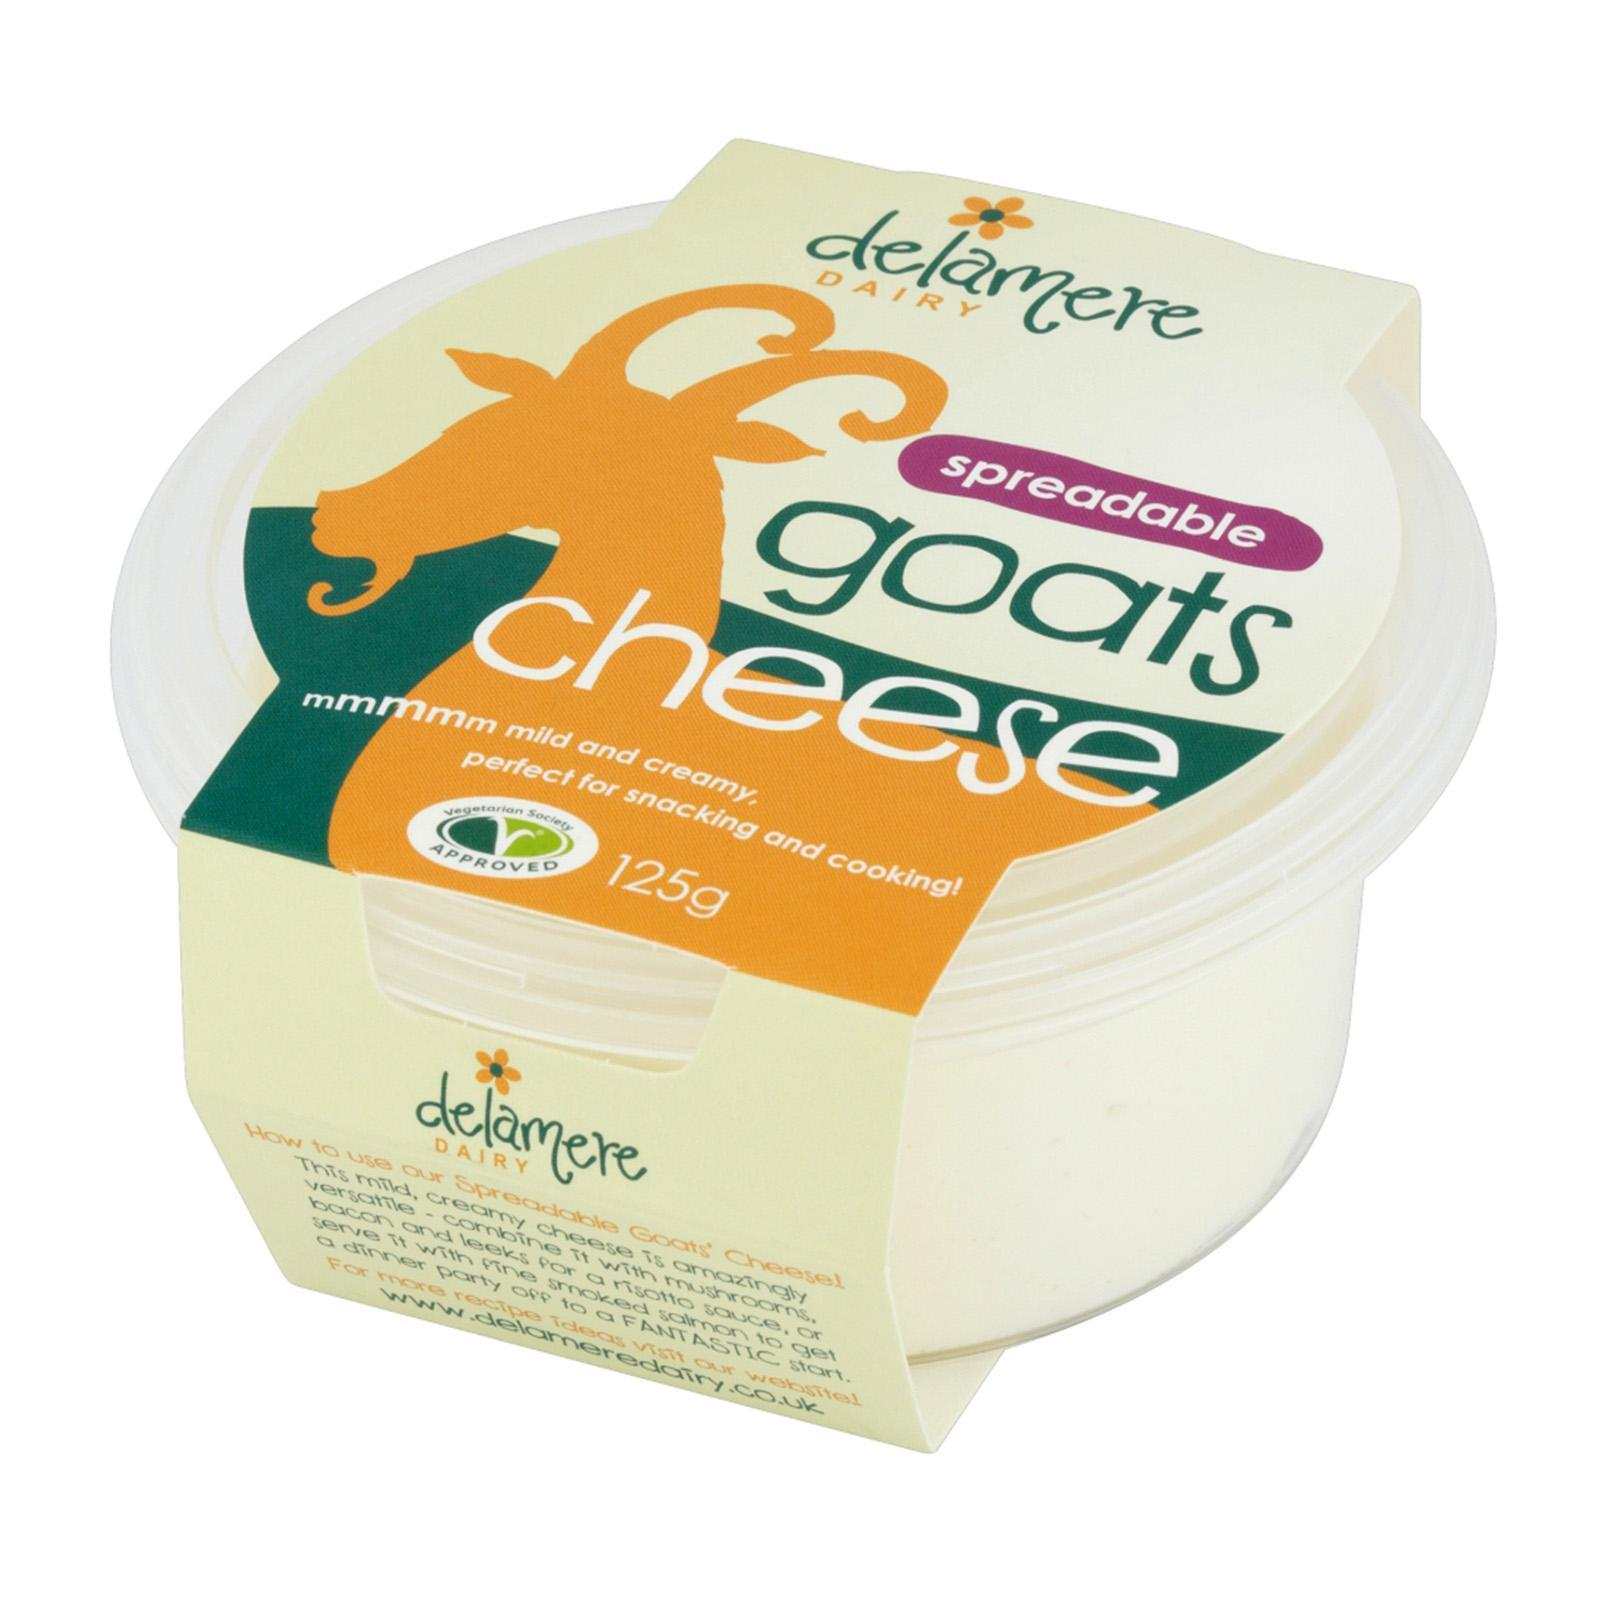 Delamere Dairy Spreadable Goats Cheese Spread